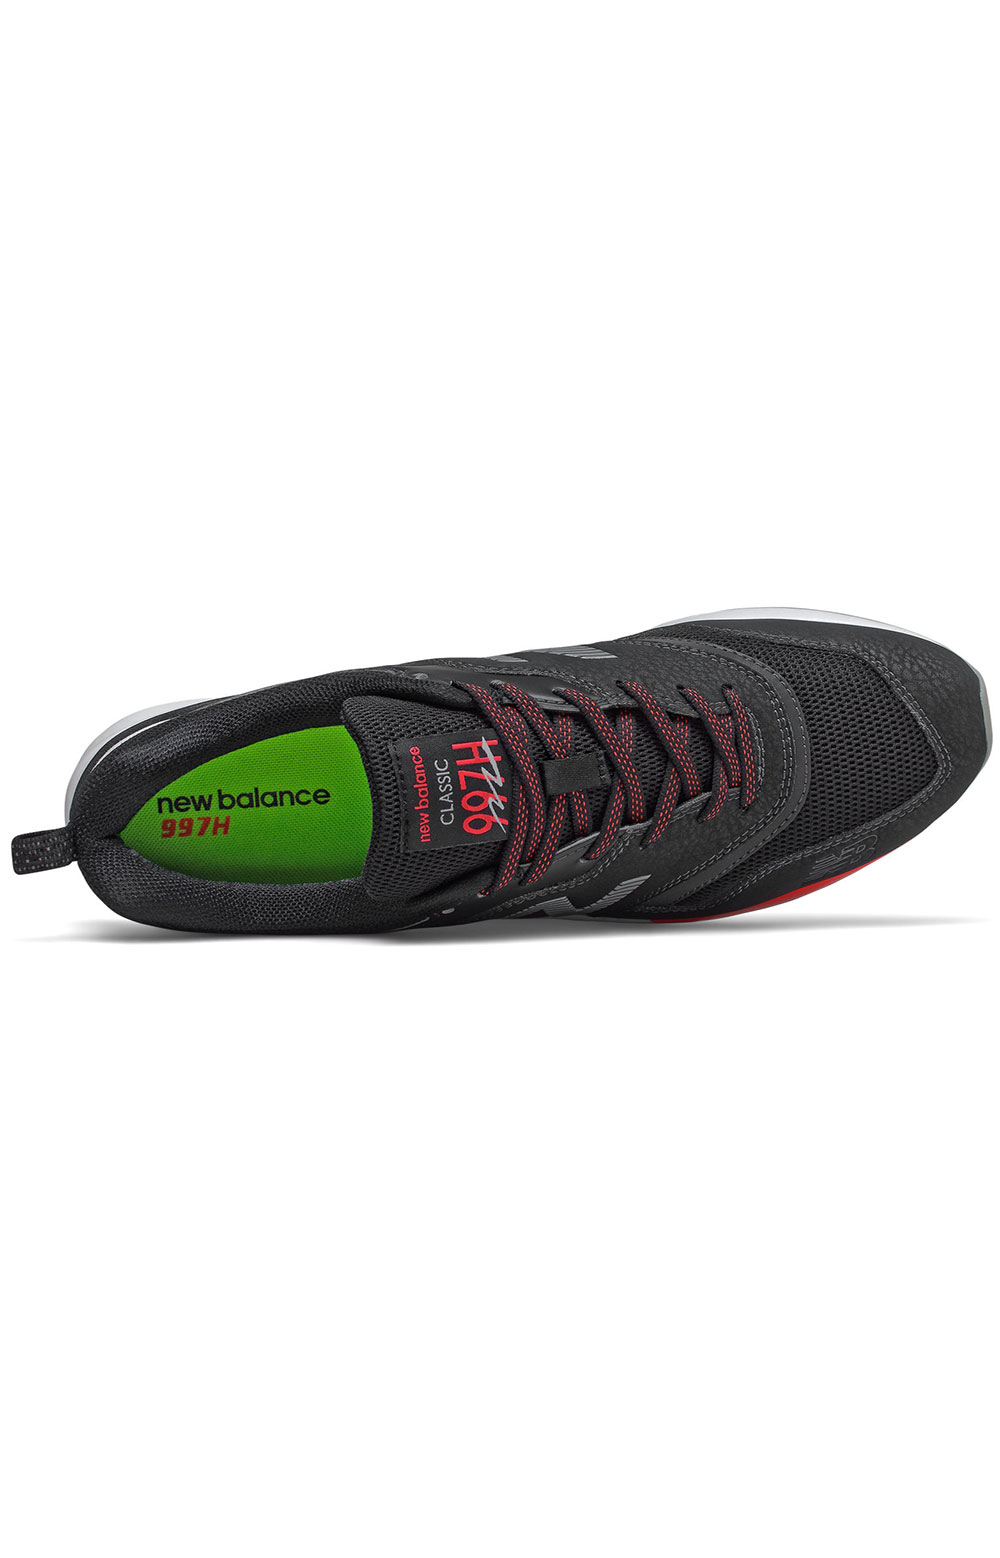 (CM997HFQ) 997H Shoes - Black/Energy Red/White  3